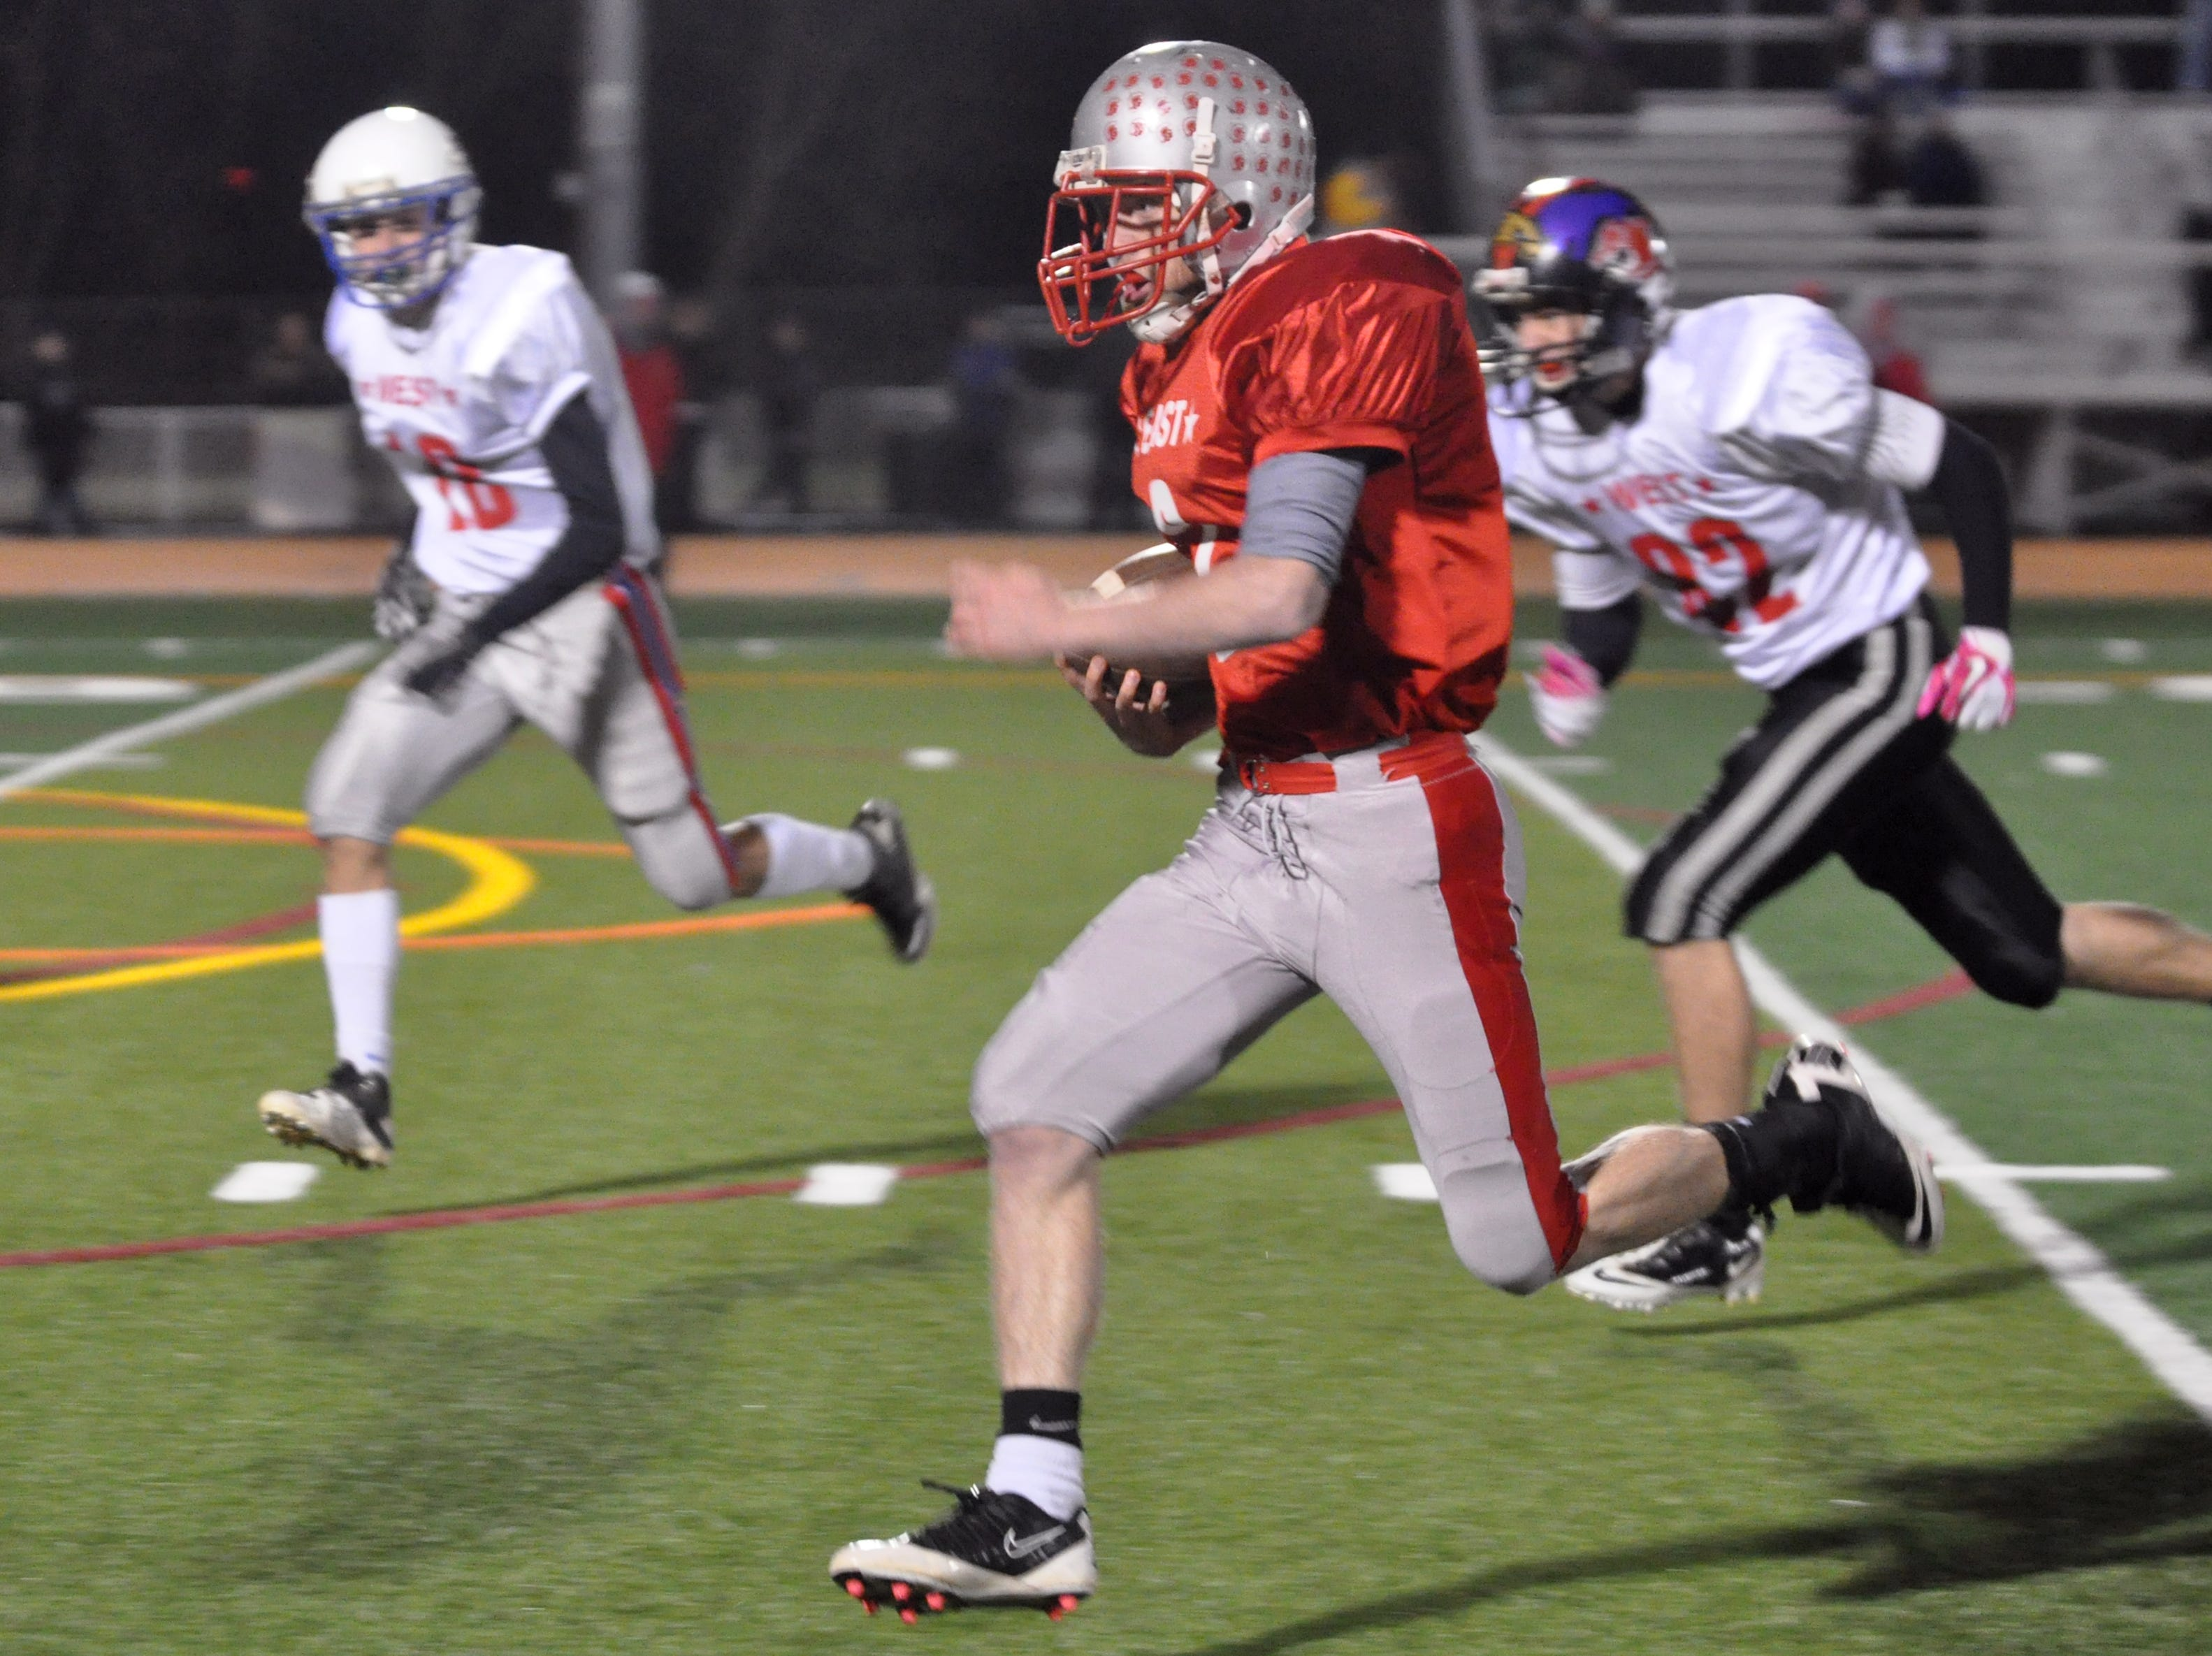 From 2011: Chenango Valley's Adam Greene blows past opponents of the West Squad to score a touchdown for East in the first quarter of the 2011 Ernie Davis All-Star Football Classic held at Union-Endicott's Ty-Cobb Stadium on Wednesday night.